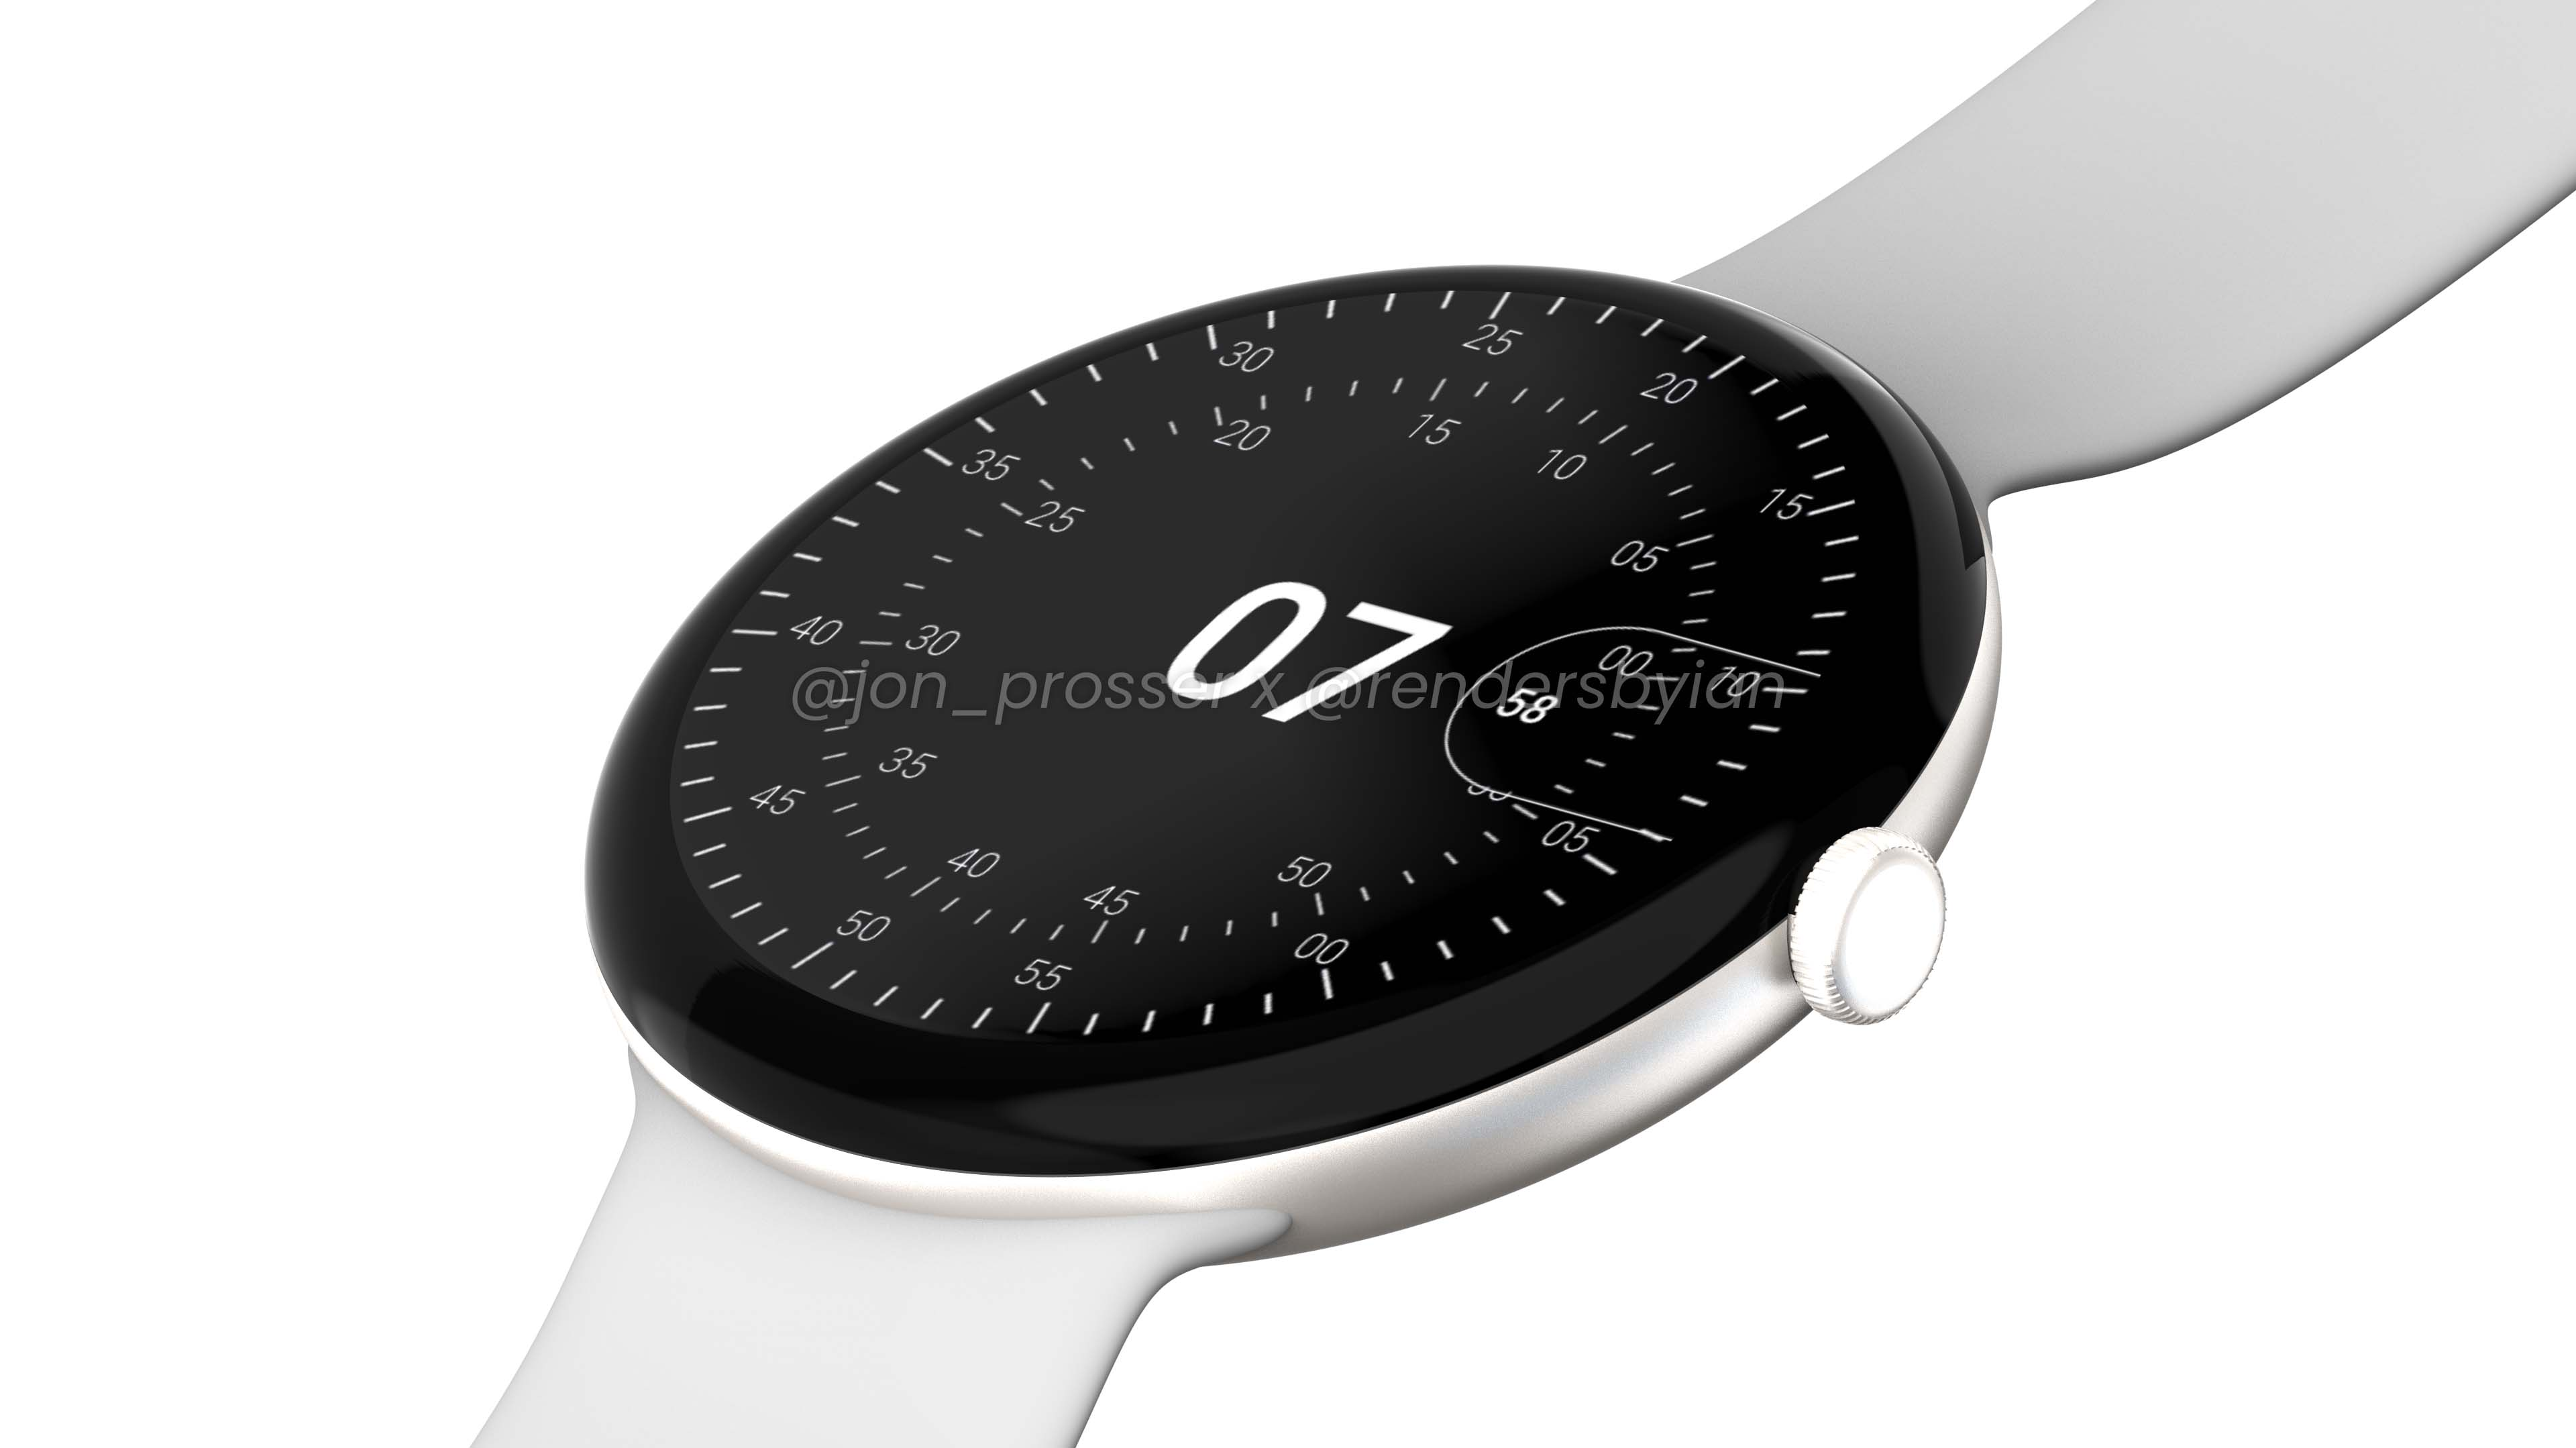 pixel watch design prosser leak